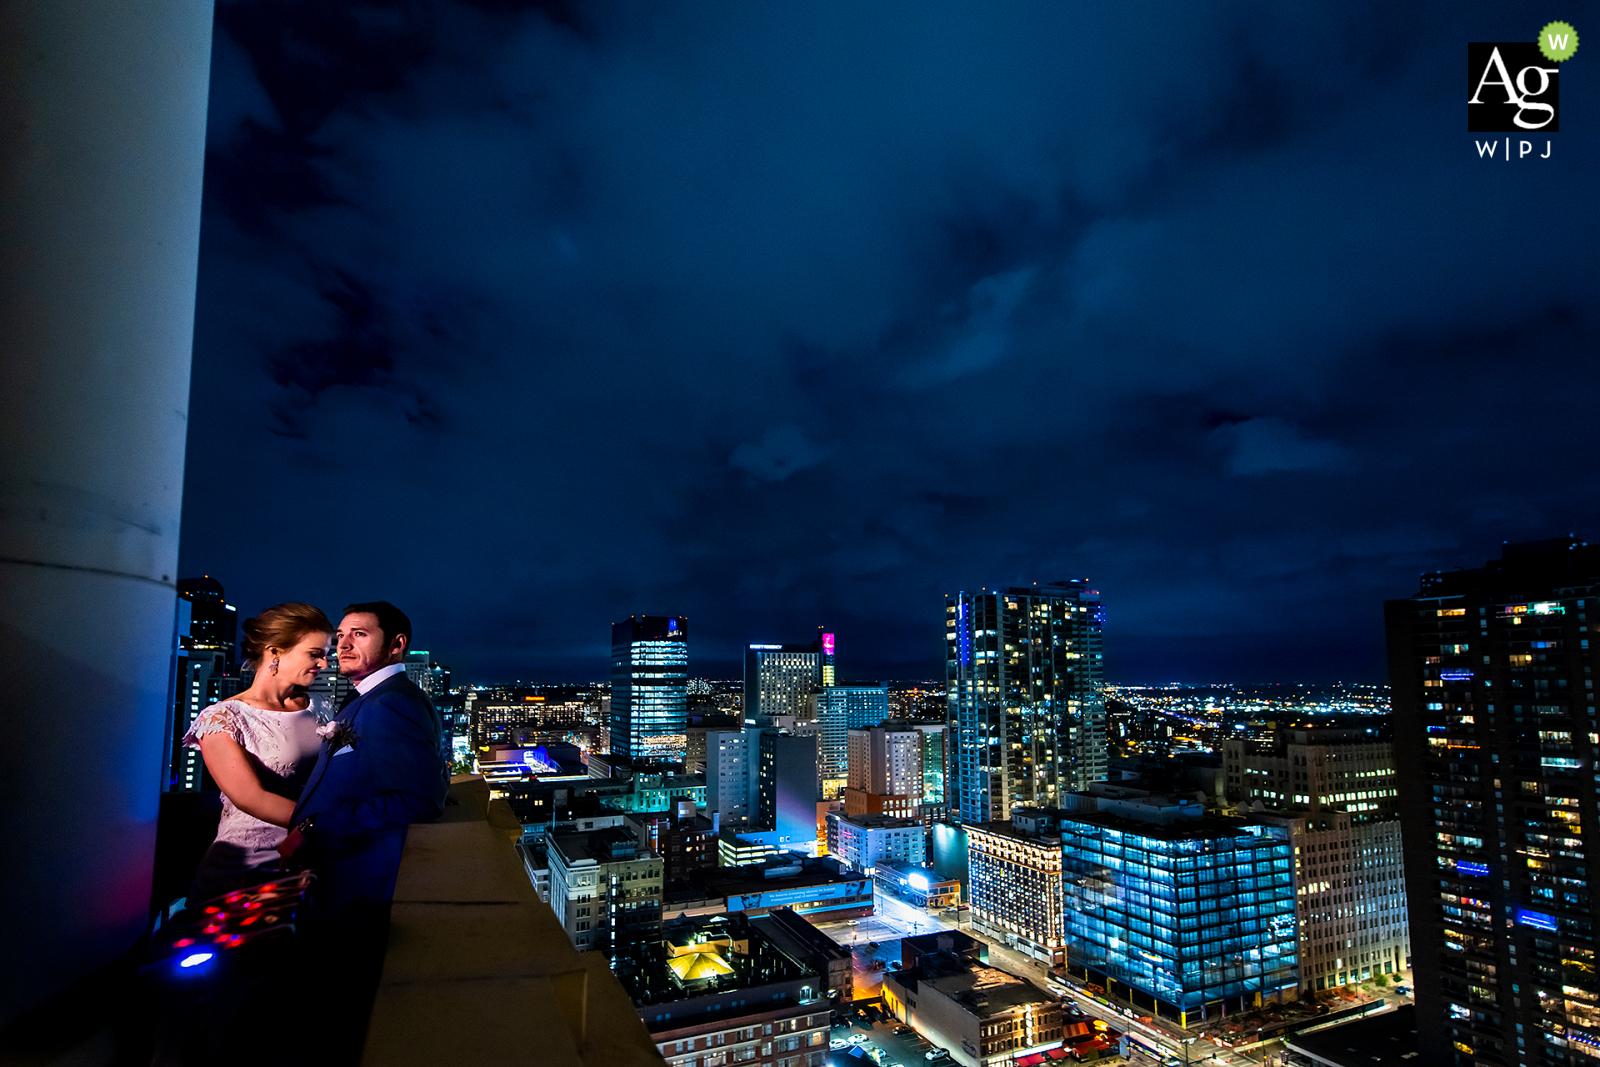 Daniels and Fisher Tower, Denver, CO artistic wedding couple portrait of the bride and groom against the Denver skyline at night